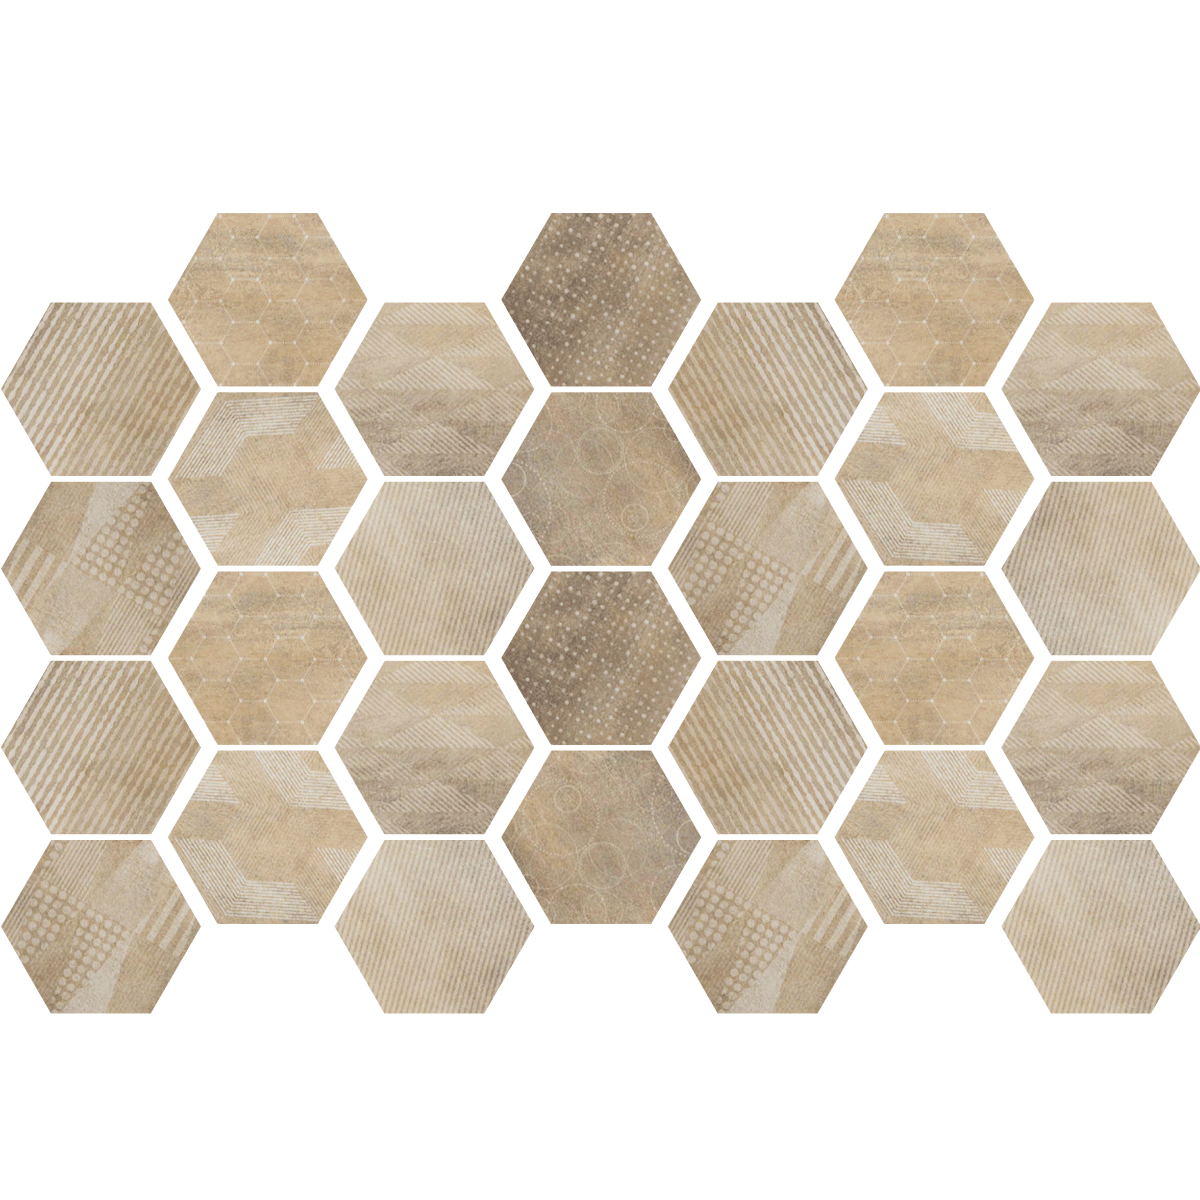 Stickers carrelages hexagones bois patin salle de bain for Carrelage 20x20 couleur